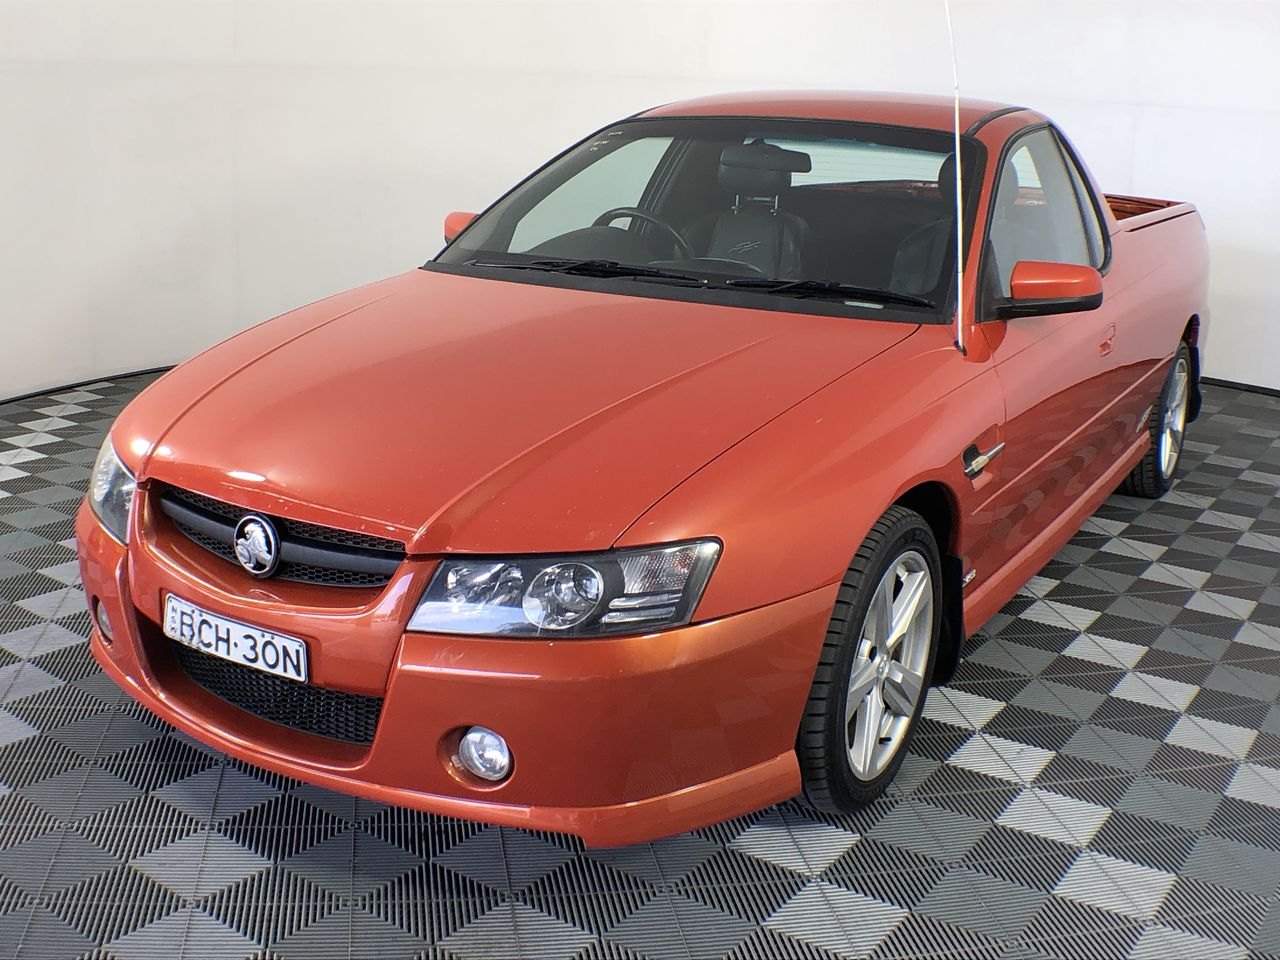 2007 Holden Commodore SS VZ 6L L98 - 6 Speed Manual Ute